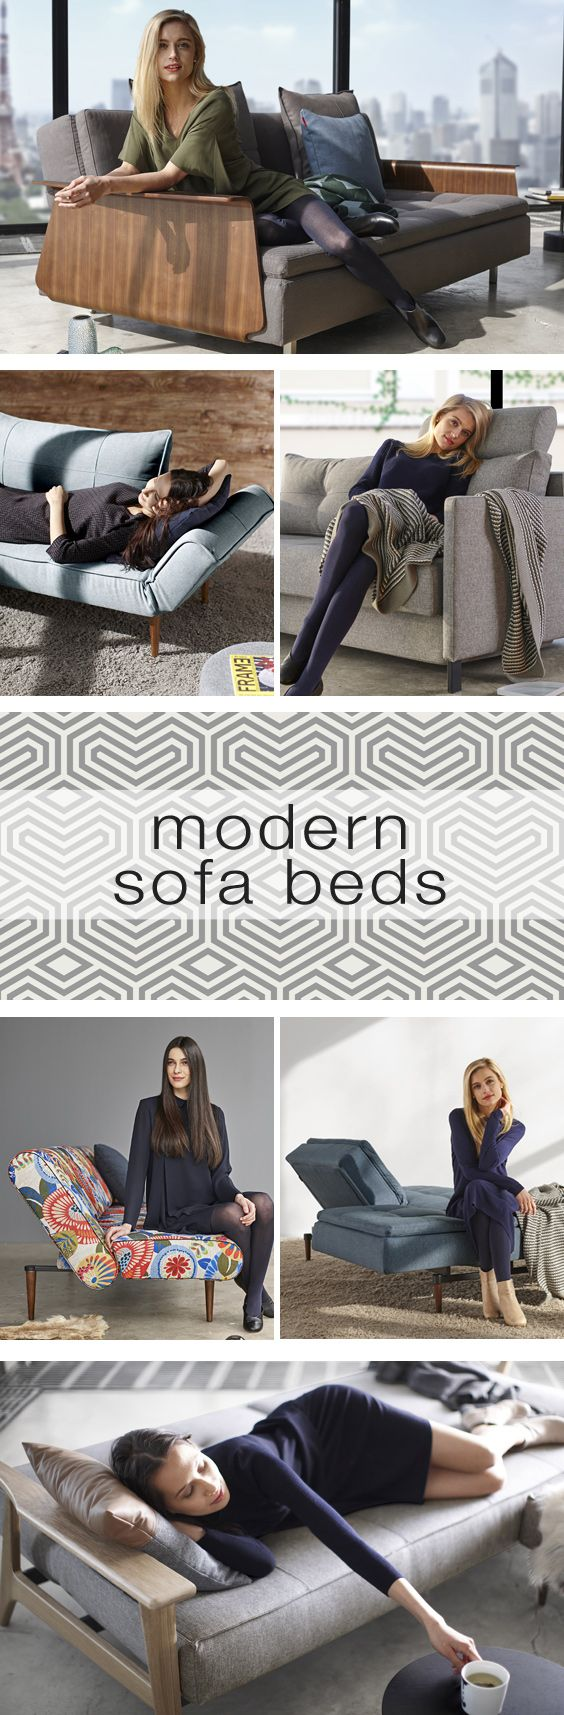 shop cool highend modern sleeper sofas to make your home comfortable and stylish